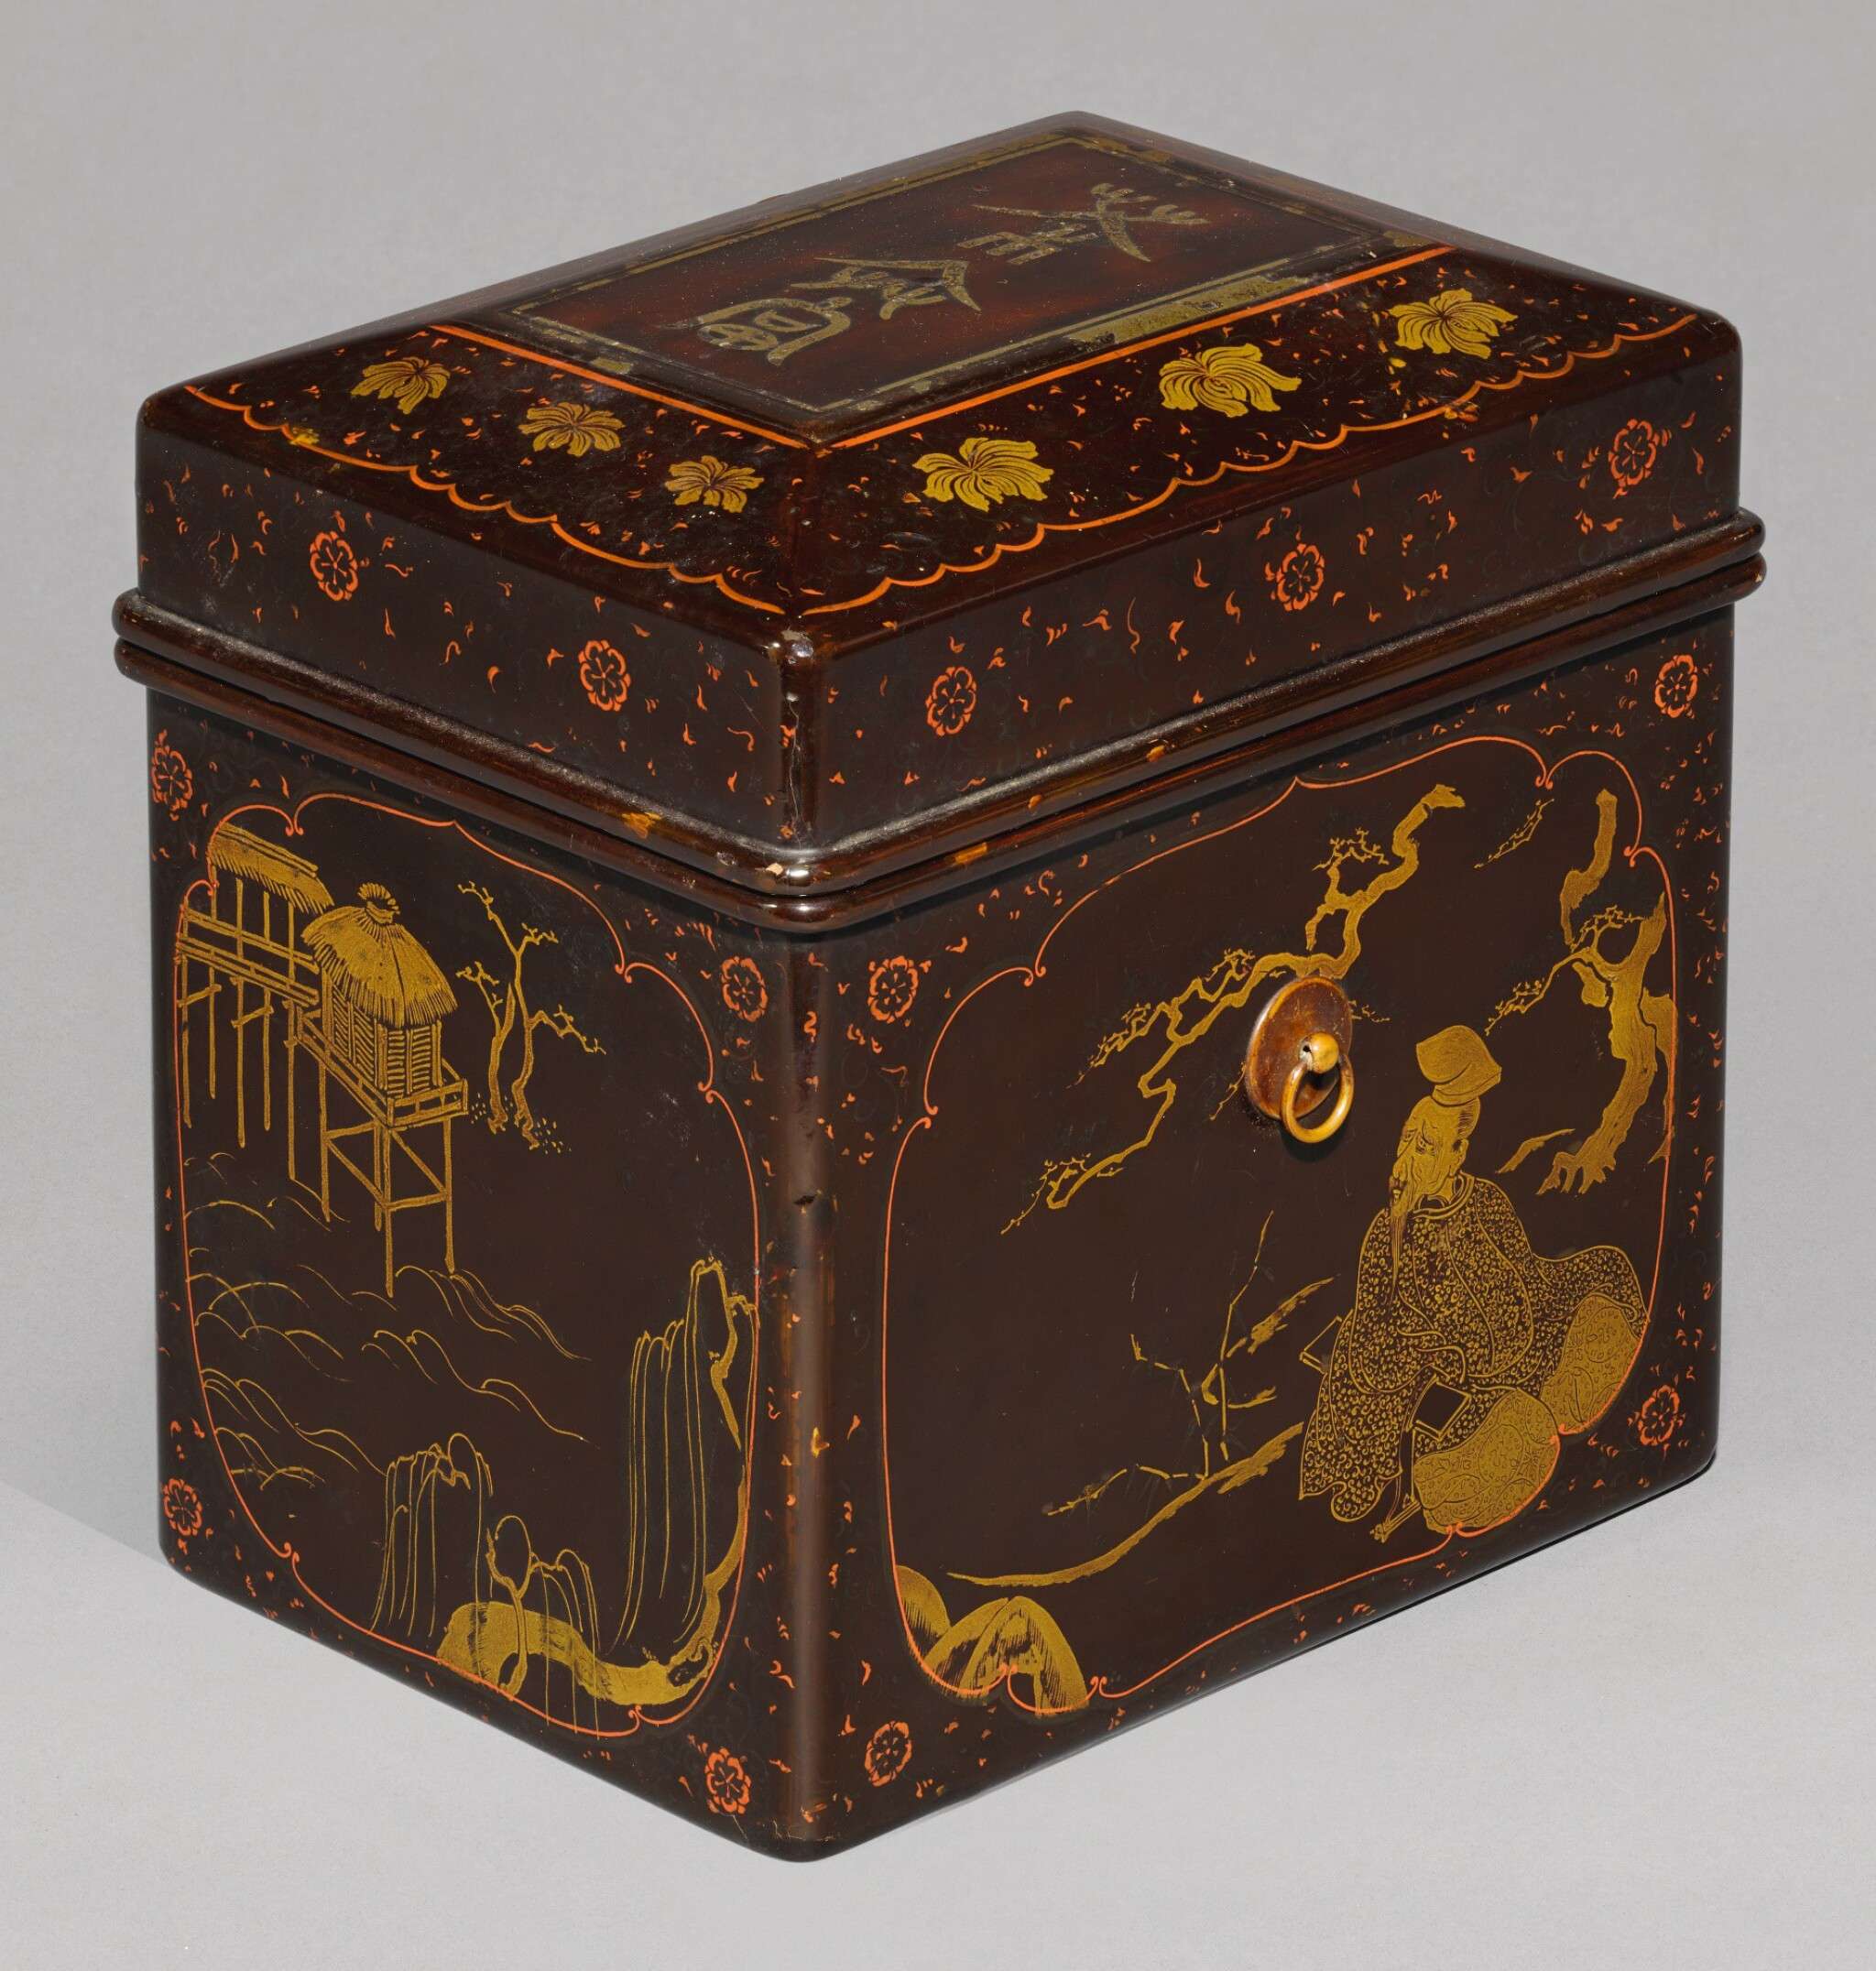 View full screen - View 1 of Lot 64. A LACQUER CHABAKO [TEA BOX], MOMOYAMA-EDO PERIOD, LATE 16TH-EARLY 17TH CENTURY.